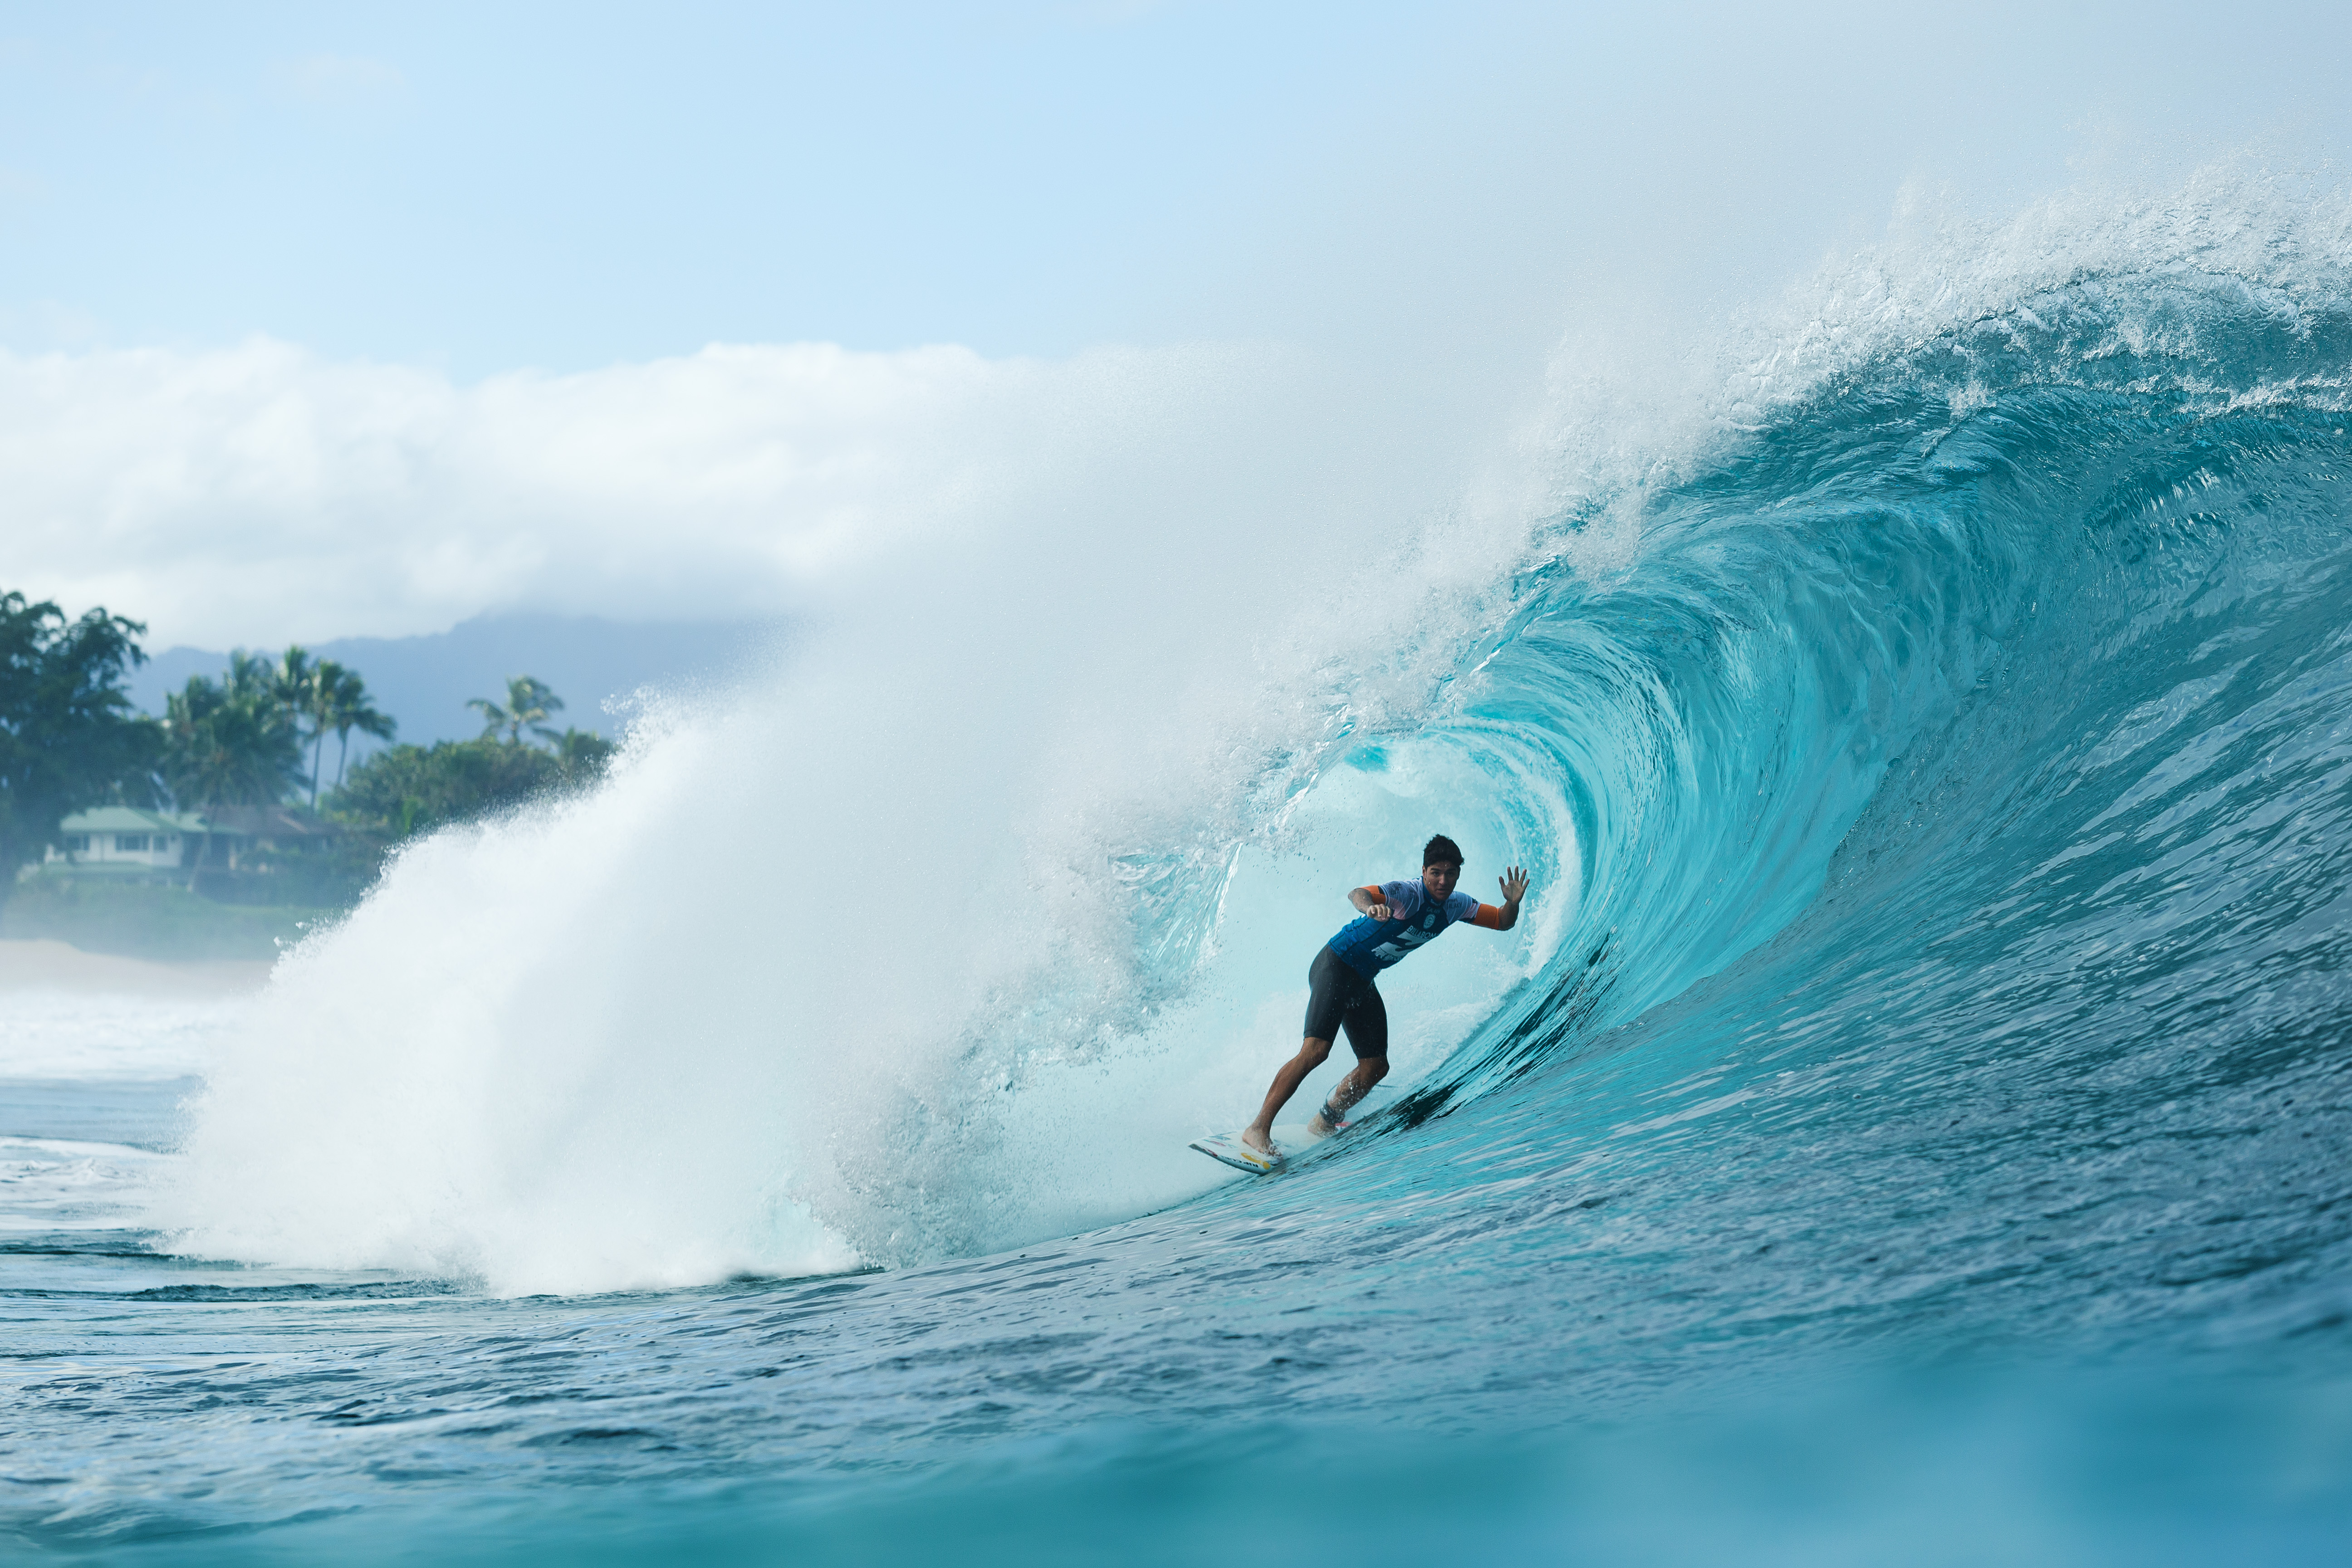 Gabriel Medina of Brasil won his maiden ASP World Title at the Billabong Pipe Masters in Memory of Andy Irons at Pipeline. 19 December, 2014 in North Shore, Hawaii.